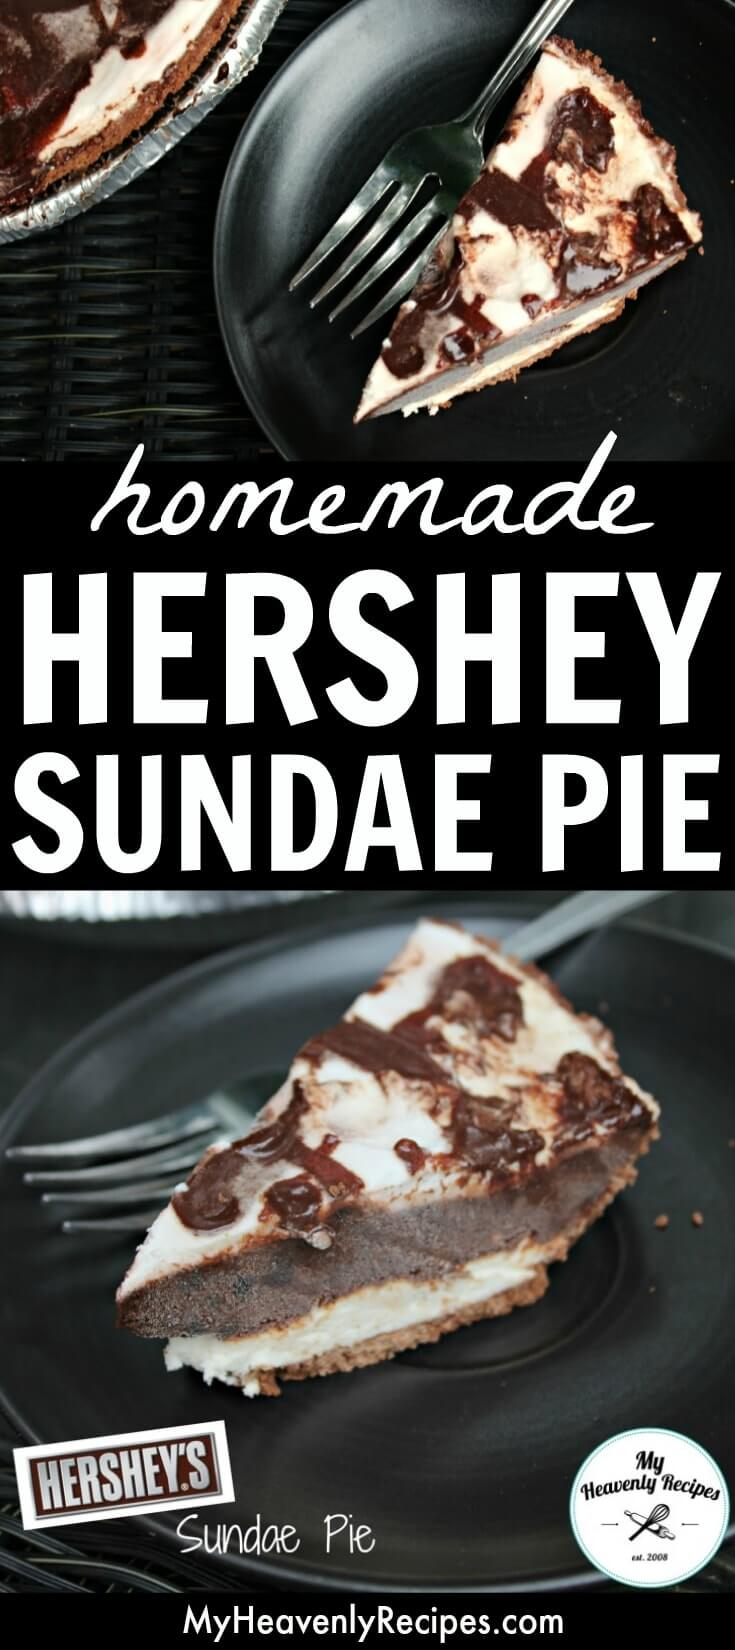 Want an amazing dessert recipe? This homemade copycat Hershey Sundae Pie is the perfect recipe to make! It's an easy and delicious dessert your whole family will love. #hershey #hersheys #pie #hersheysundaepie